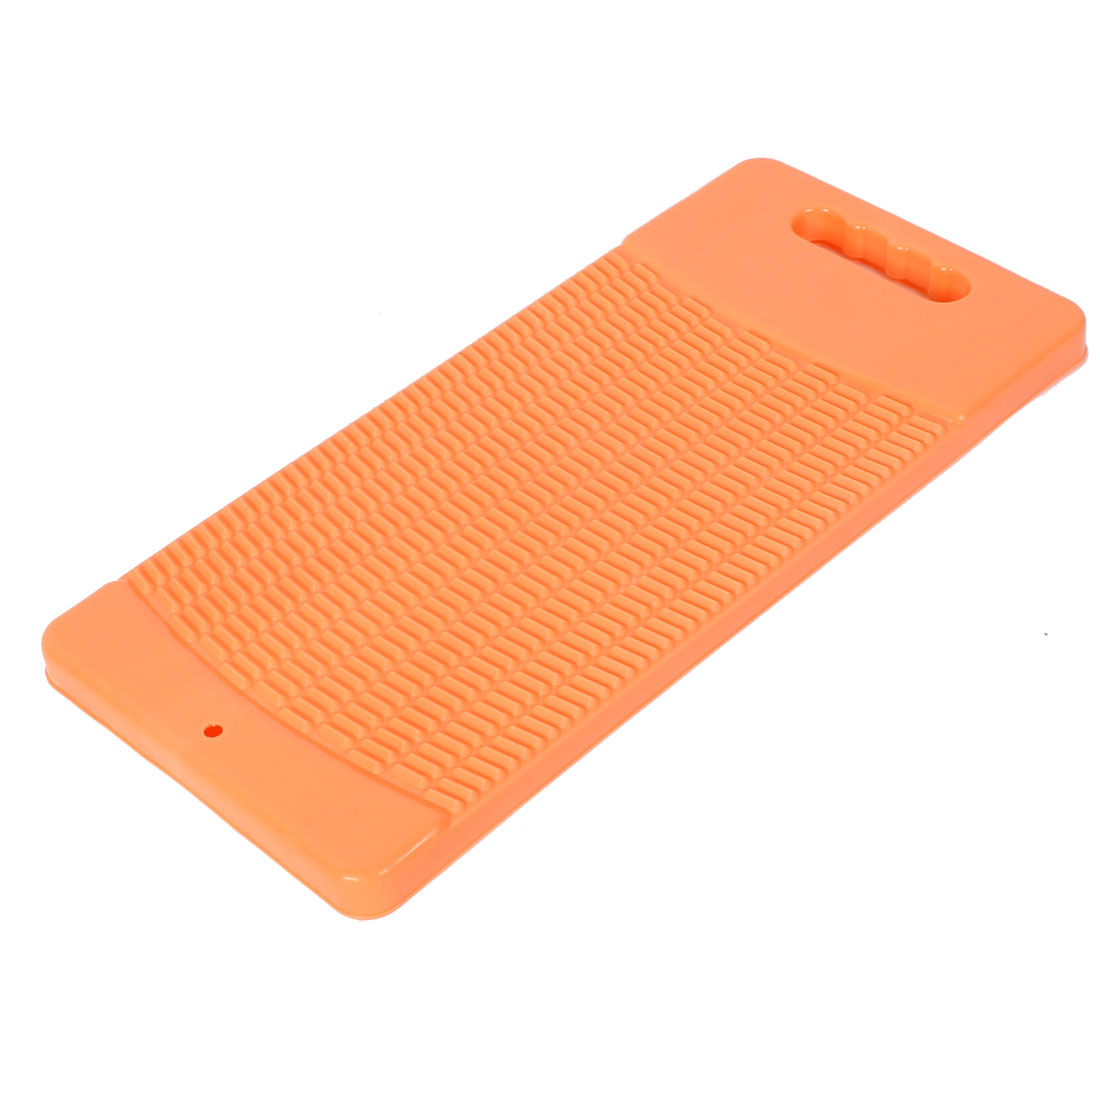 Plastic Rectangle Shaped Washing Clothes Laundry Board Washboard Orange 43cm Long